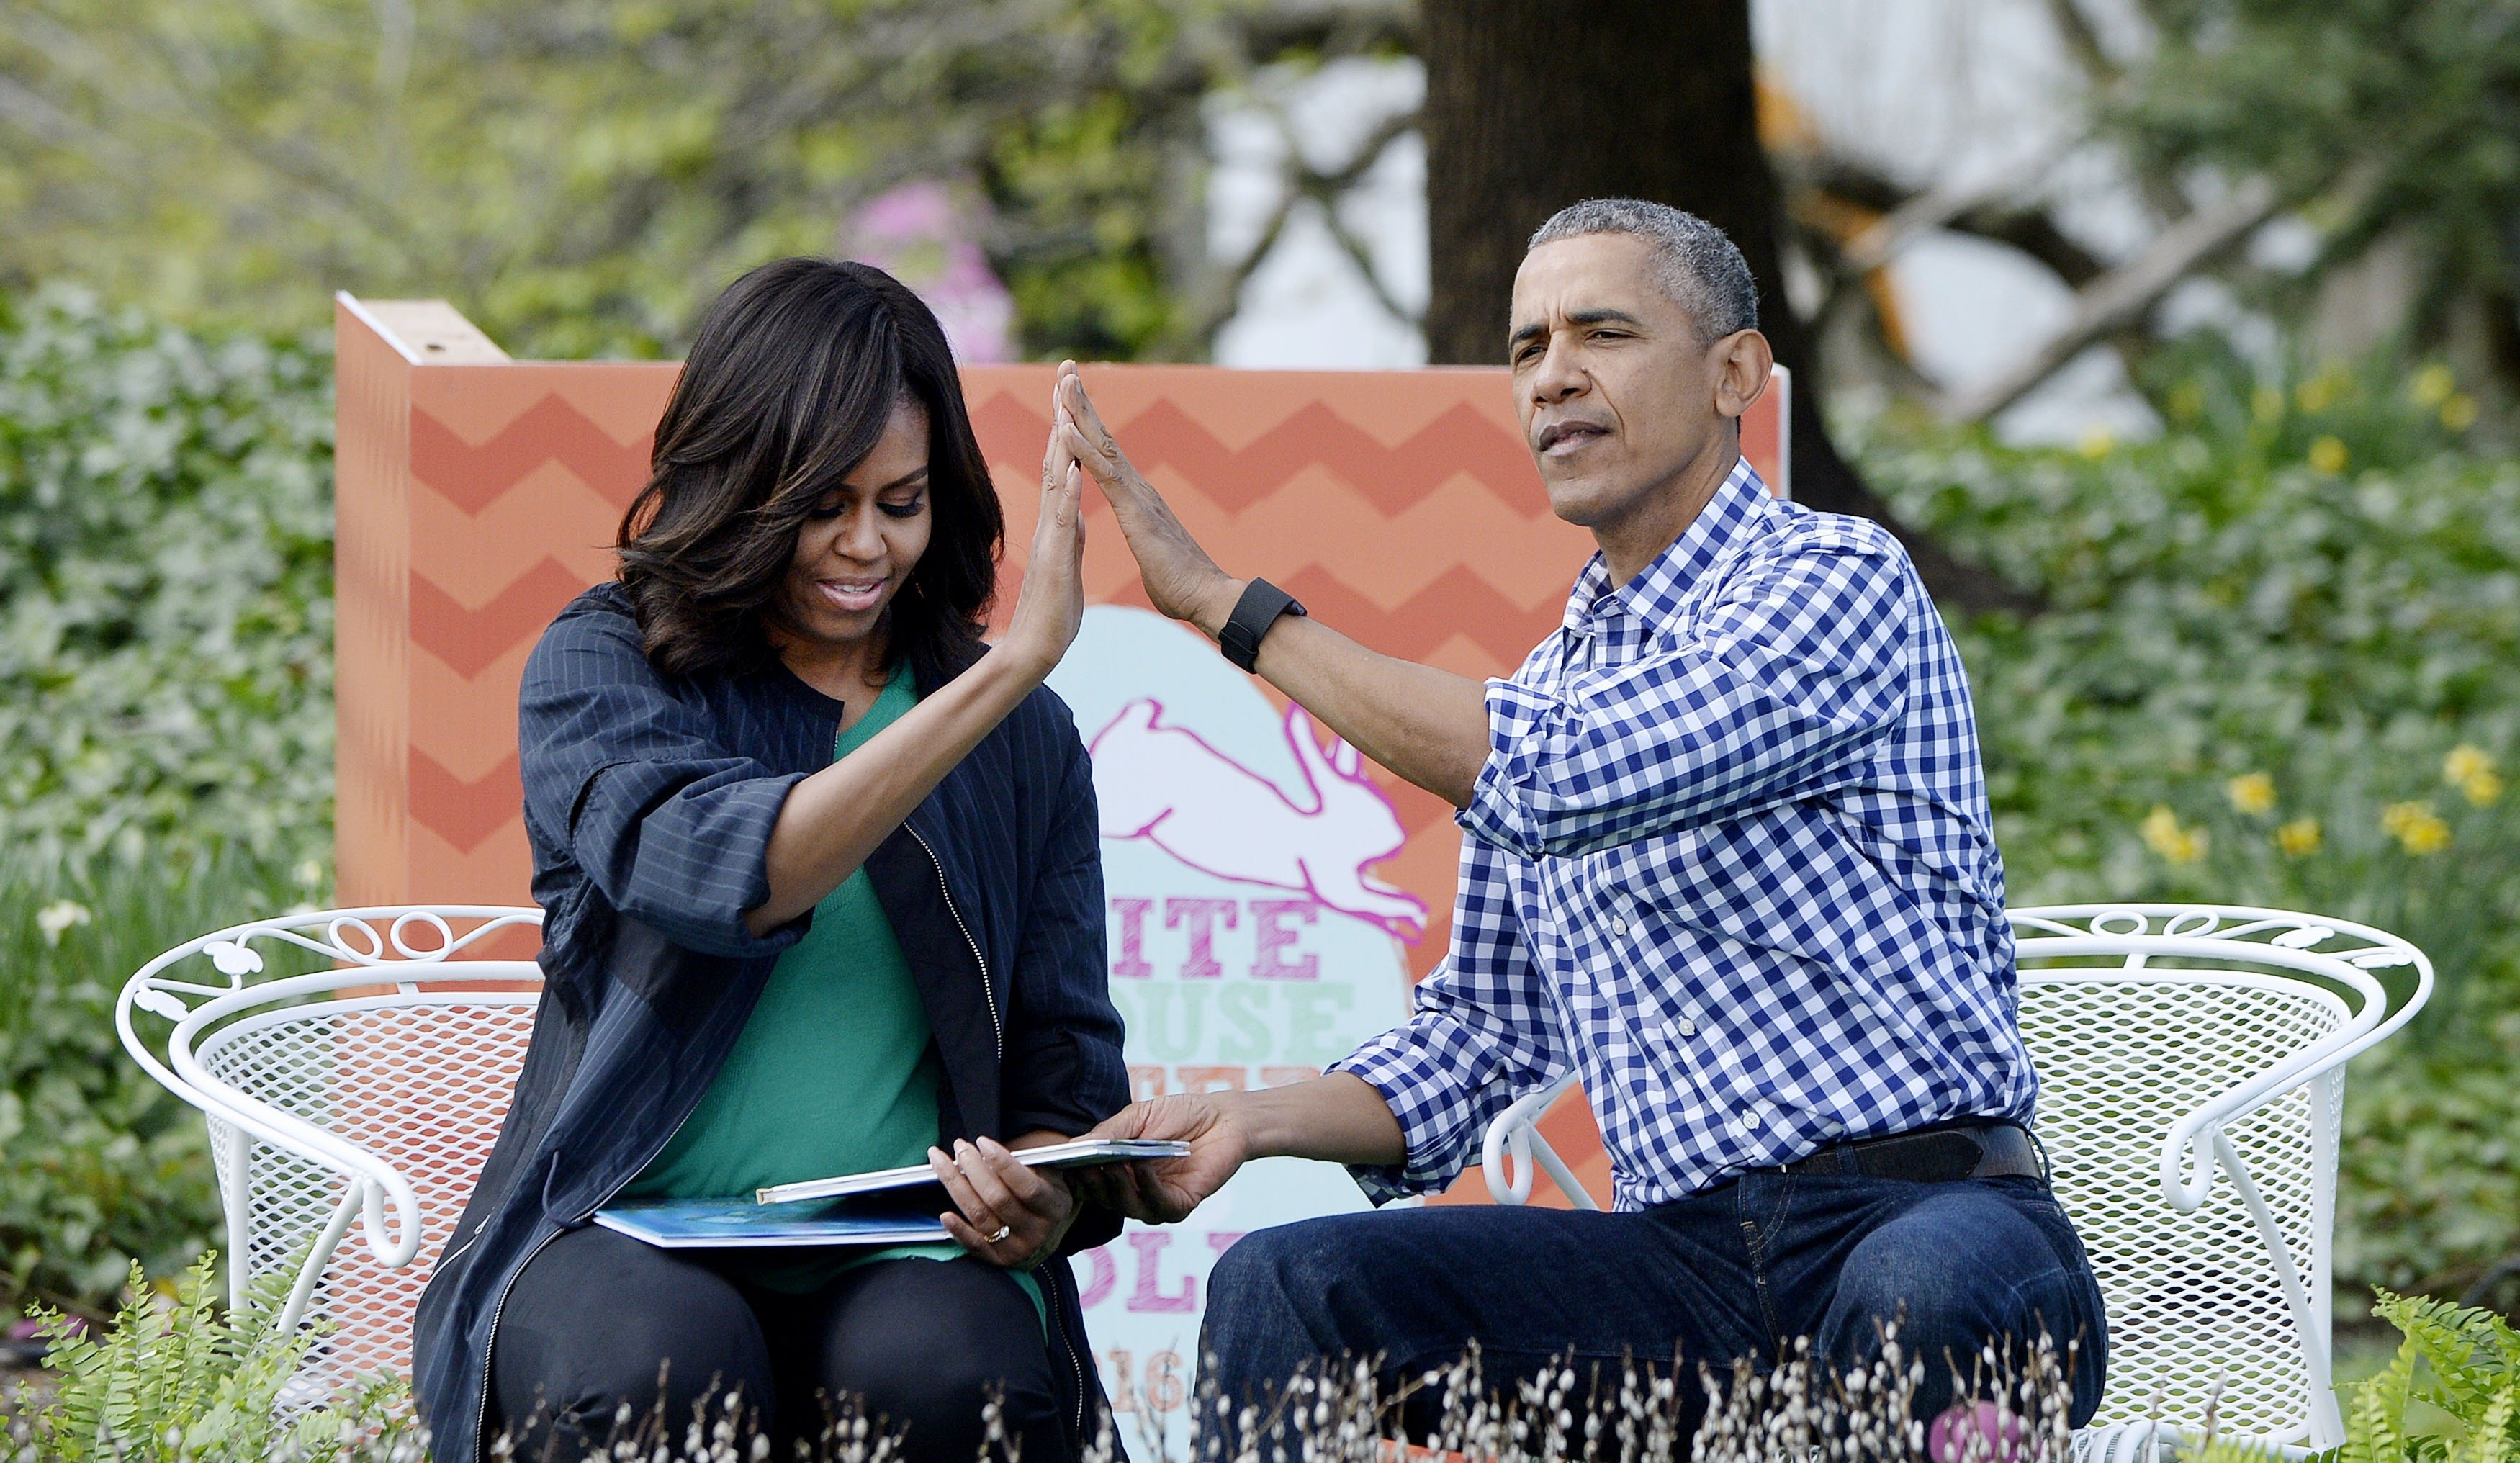 President Barack Obama and first lady Michelle Obama during the White House Easter Egg Roll on the South Lawn of the White House March 28, 2016, in Washington, DC.  | Source: Getty Images.